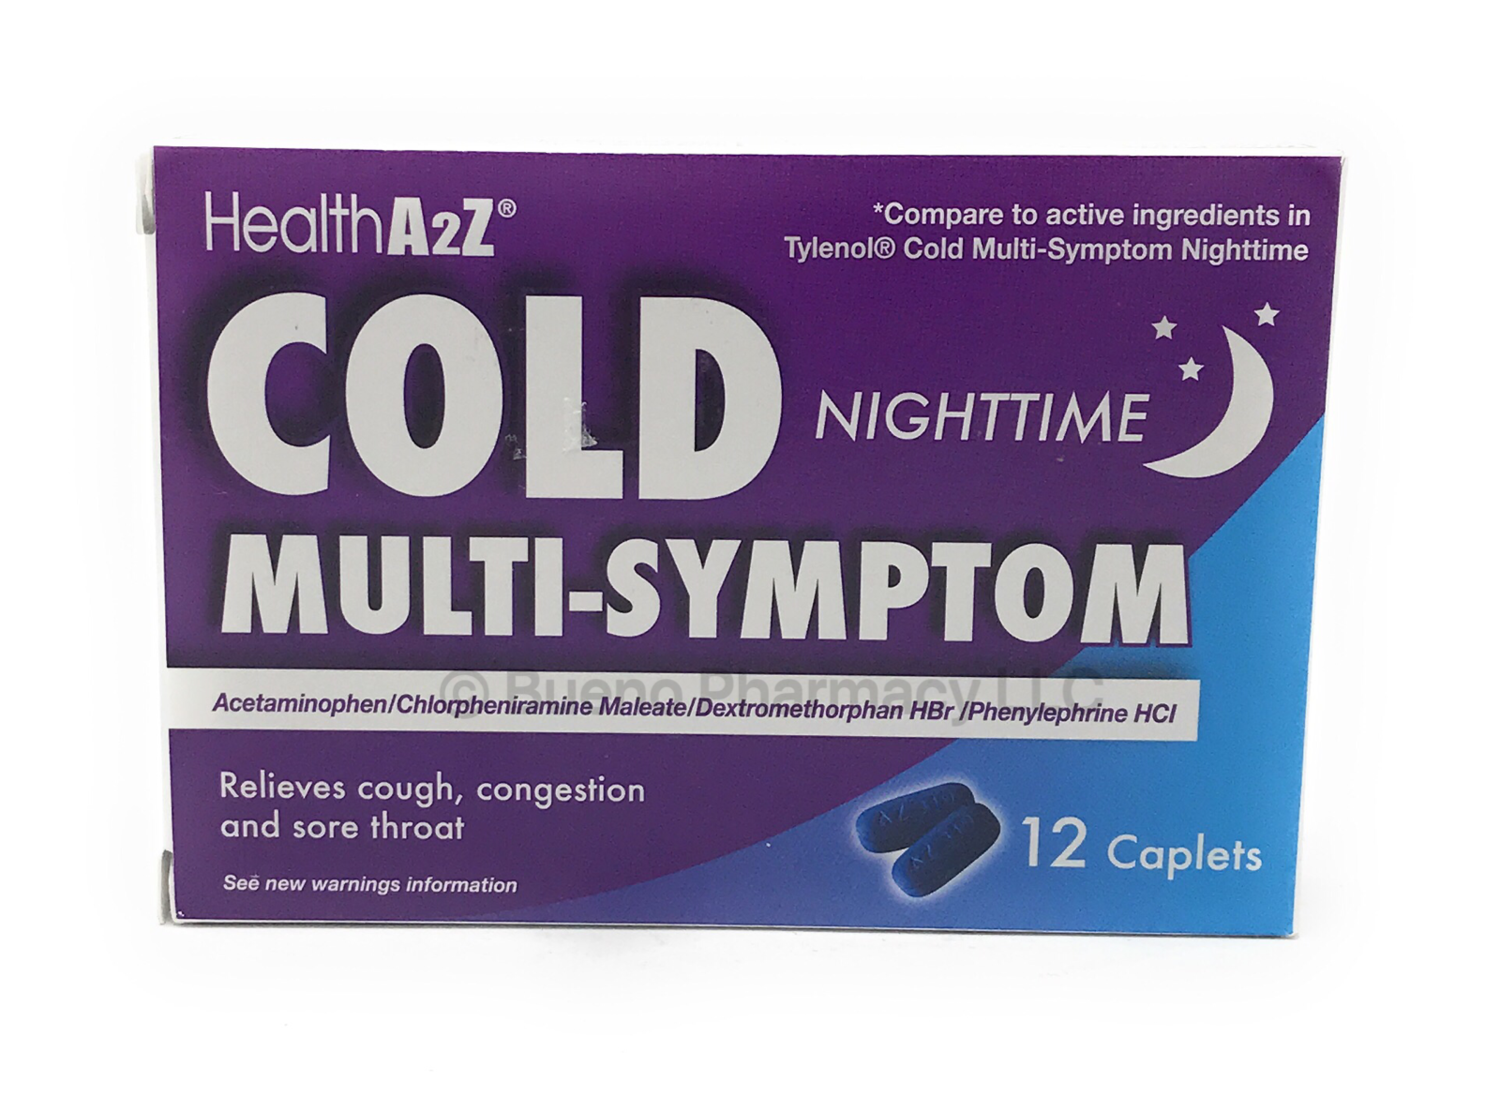 COLD MULTI-SYMPTOM NIGHT TIME A&Z 12 Caplets